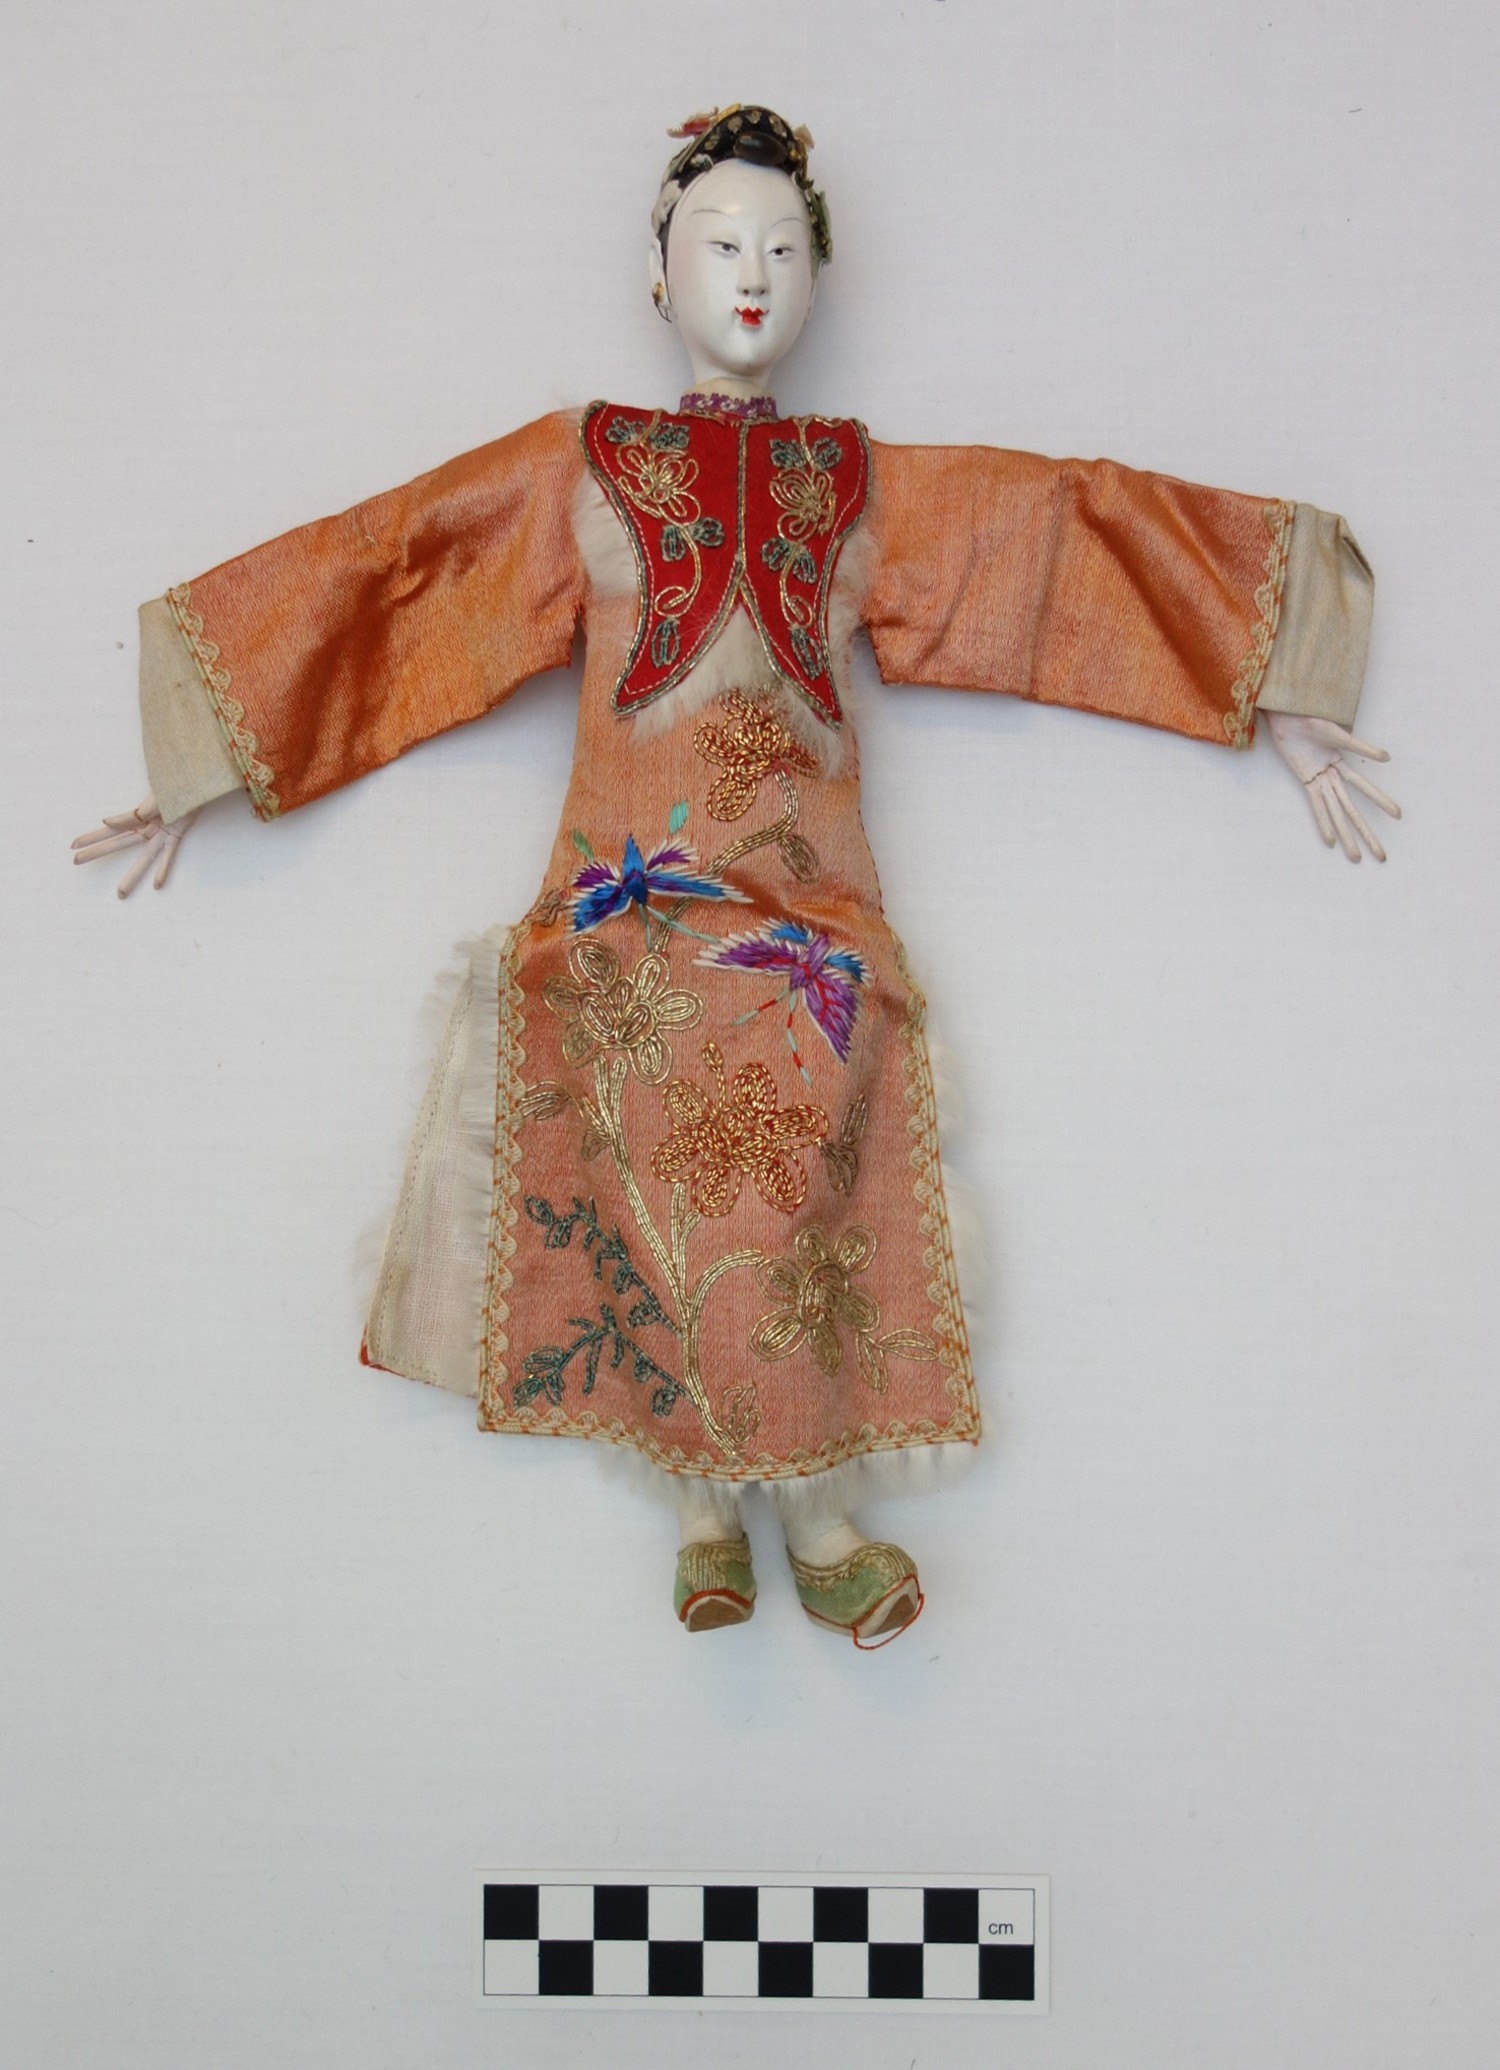 Chinese female doll, 1920s or 1930s (TRC 2019.0195).